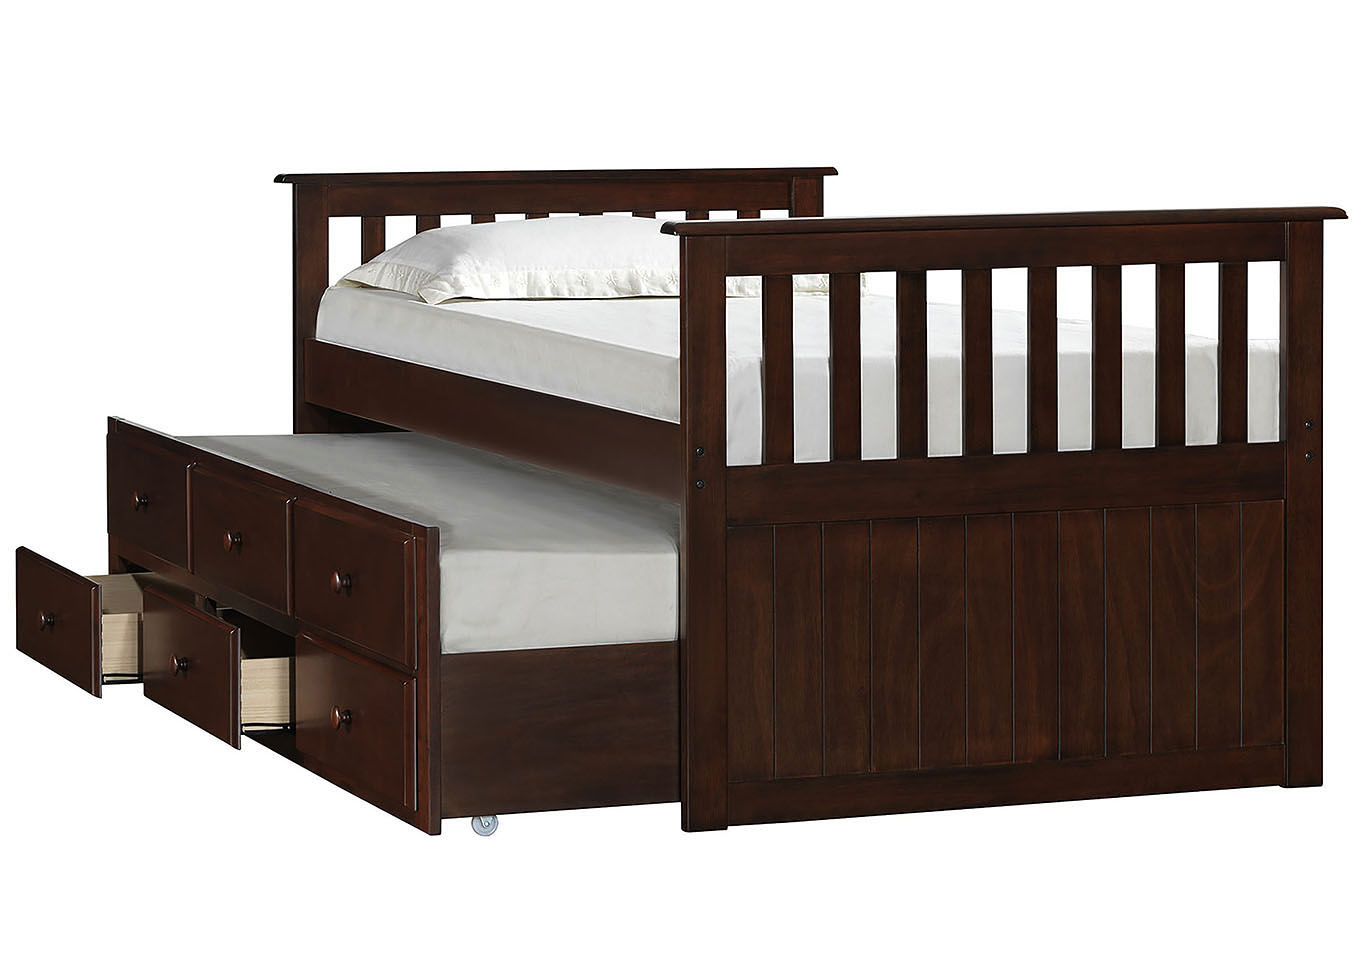 3000 Twin Bed,Lane Furniture